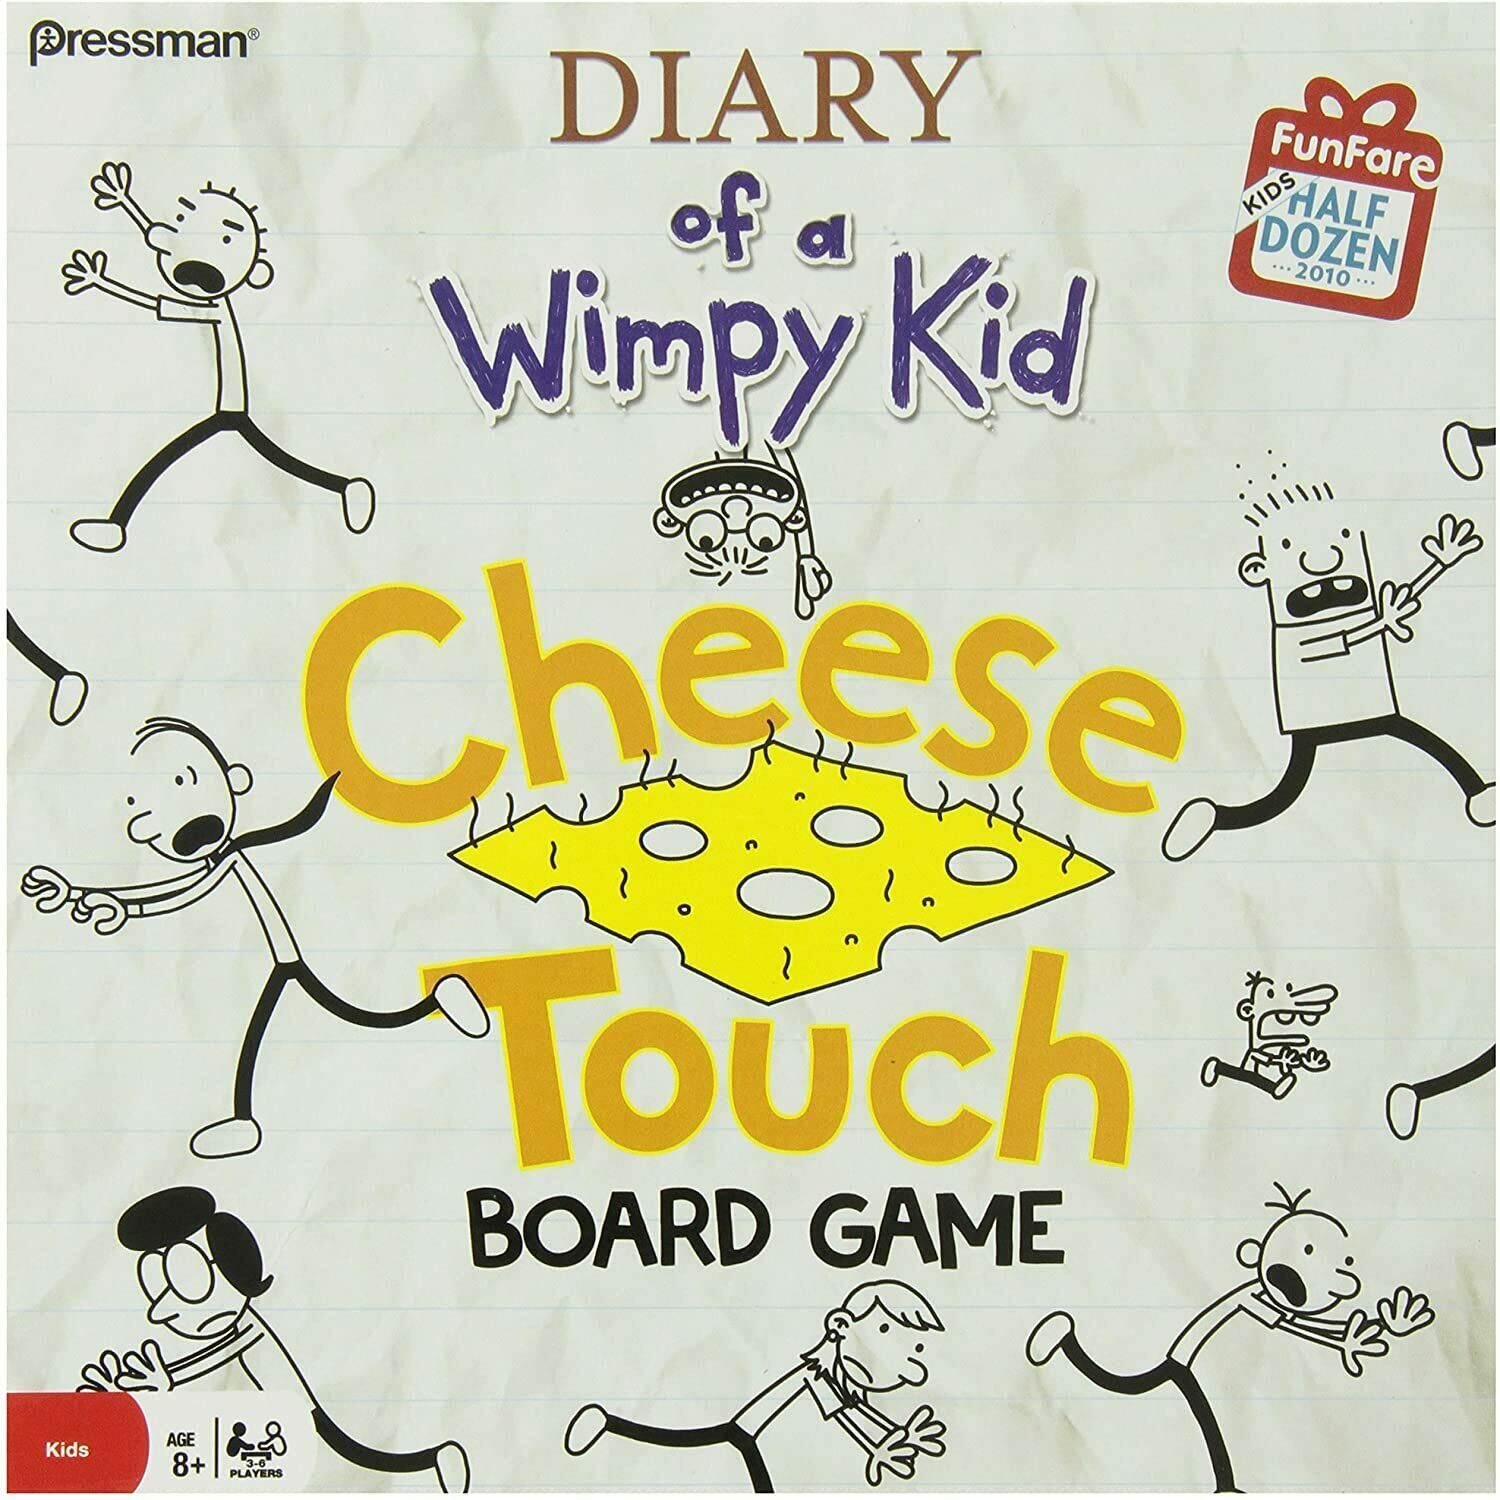 Primary image for Diary Of A Wimpy Kid Cheese Touch Board Game Pressman 2010 New Sealed